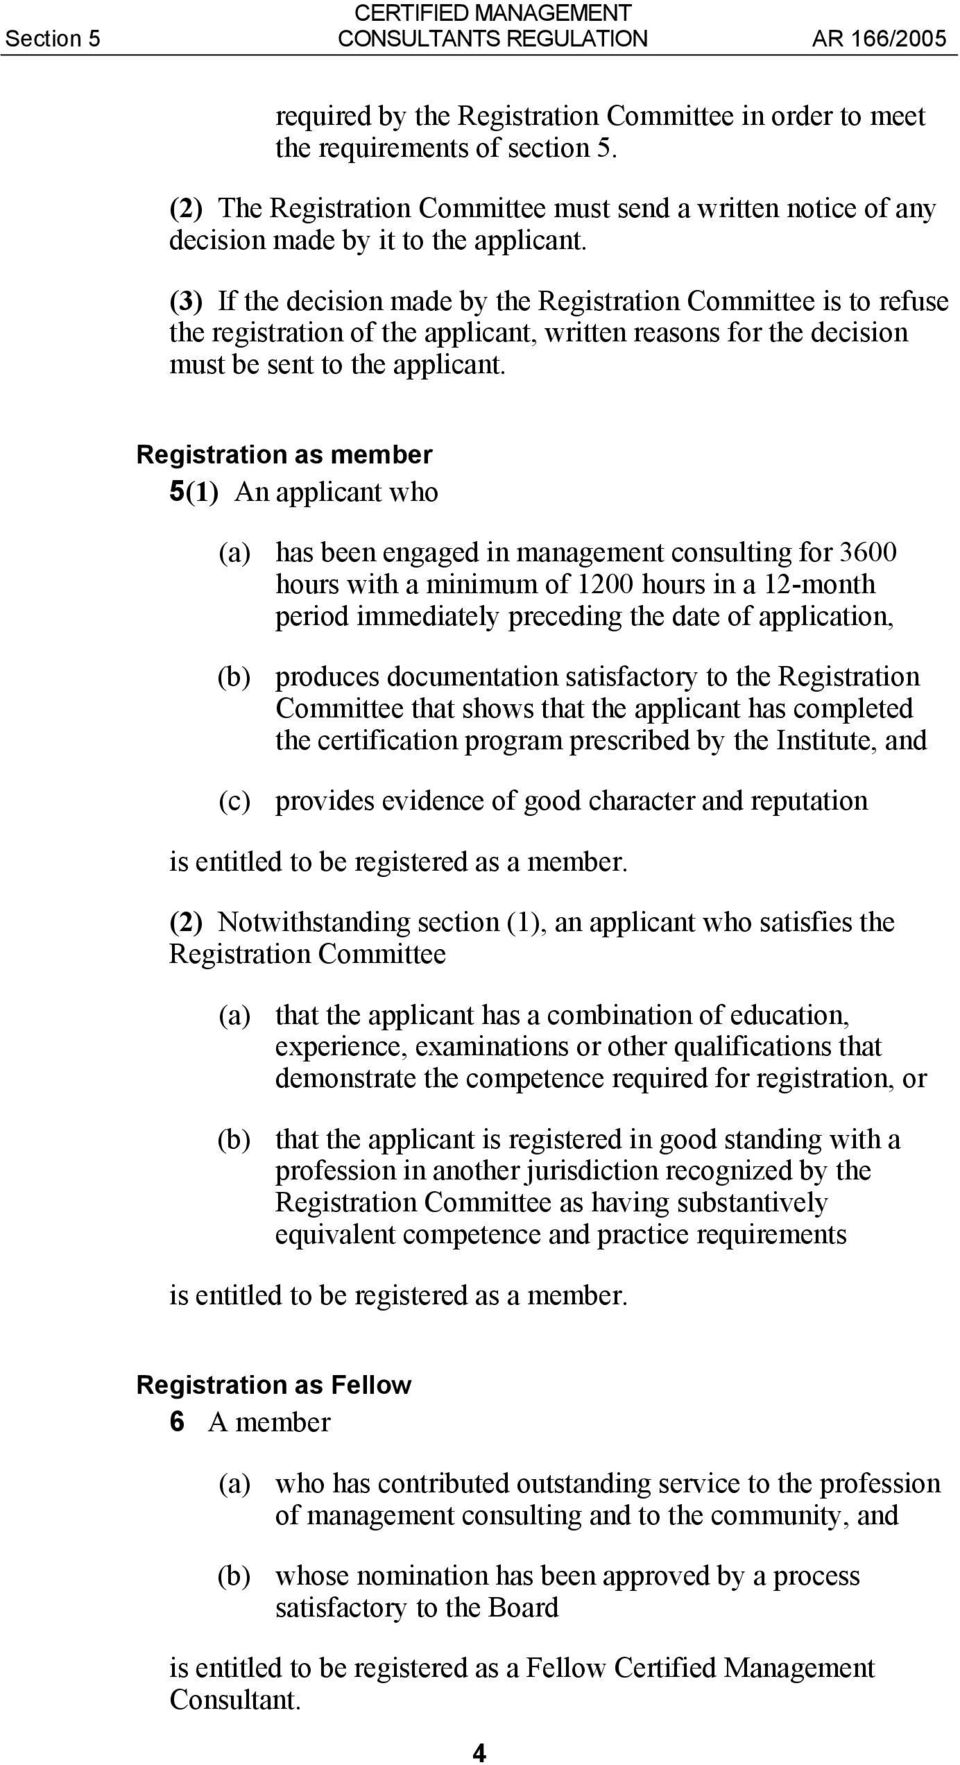 (3) If the decision made by the Registration Committee is to refuse the registration of the applicant, written reasons for the decision must be sent to the applicant.